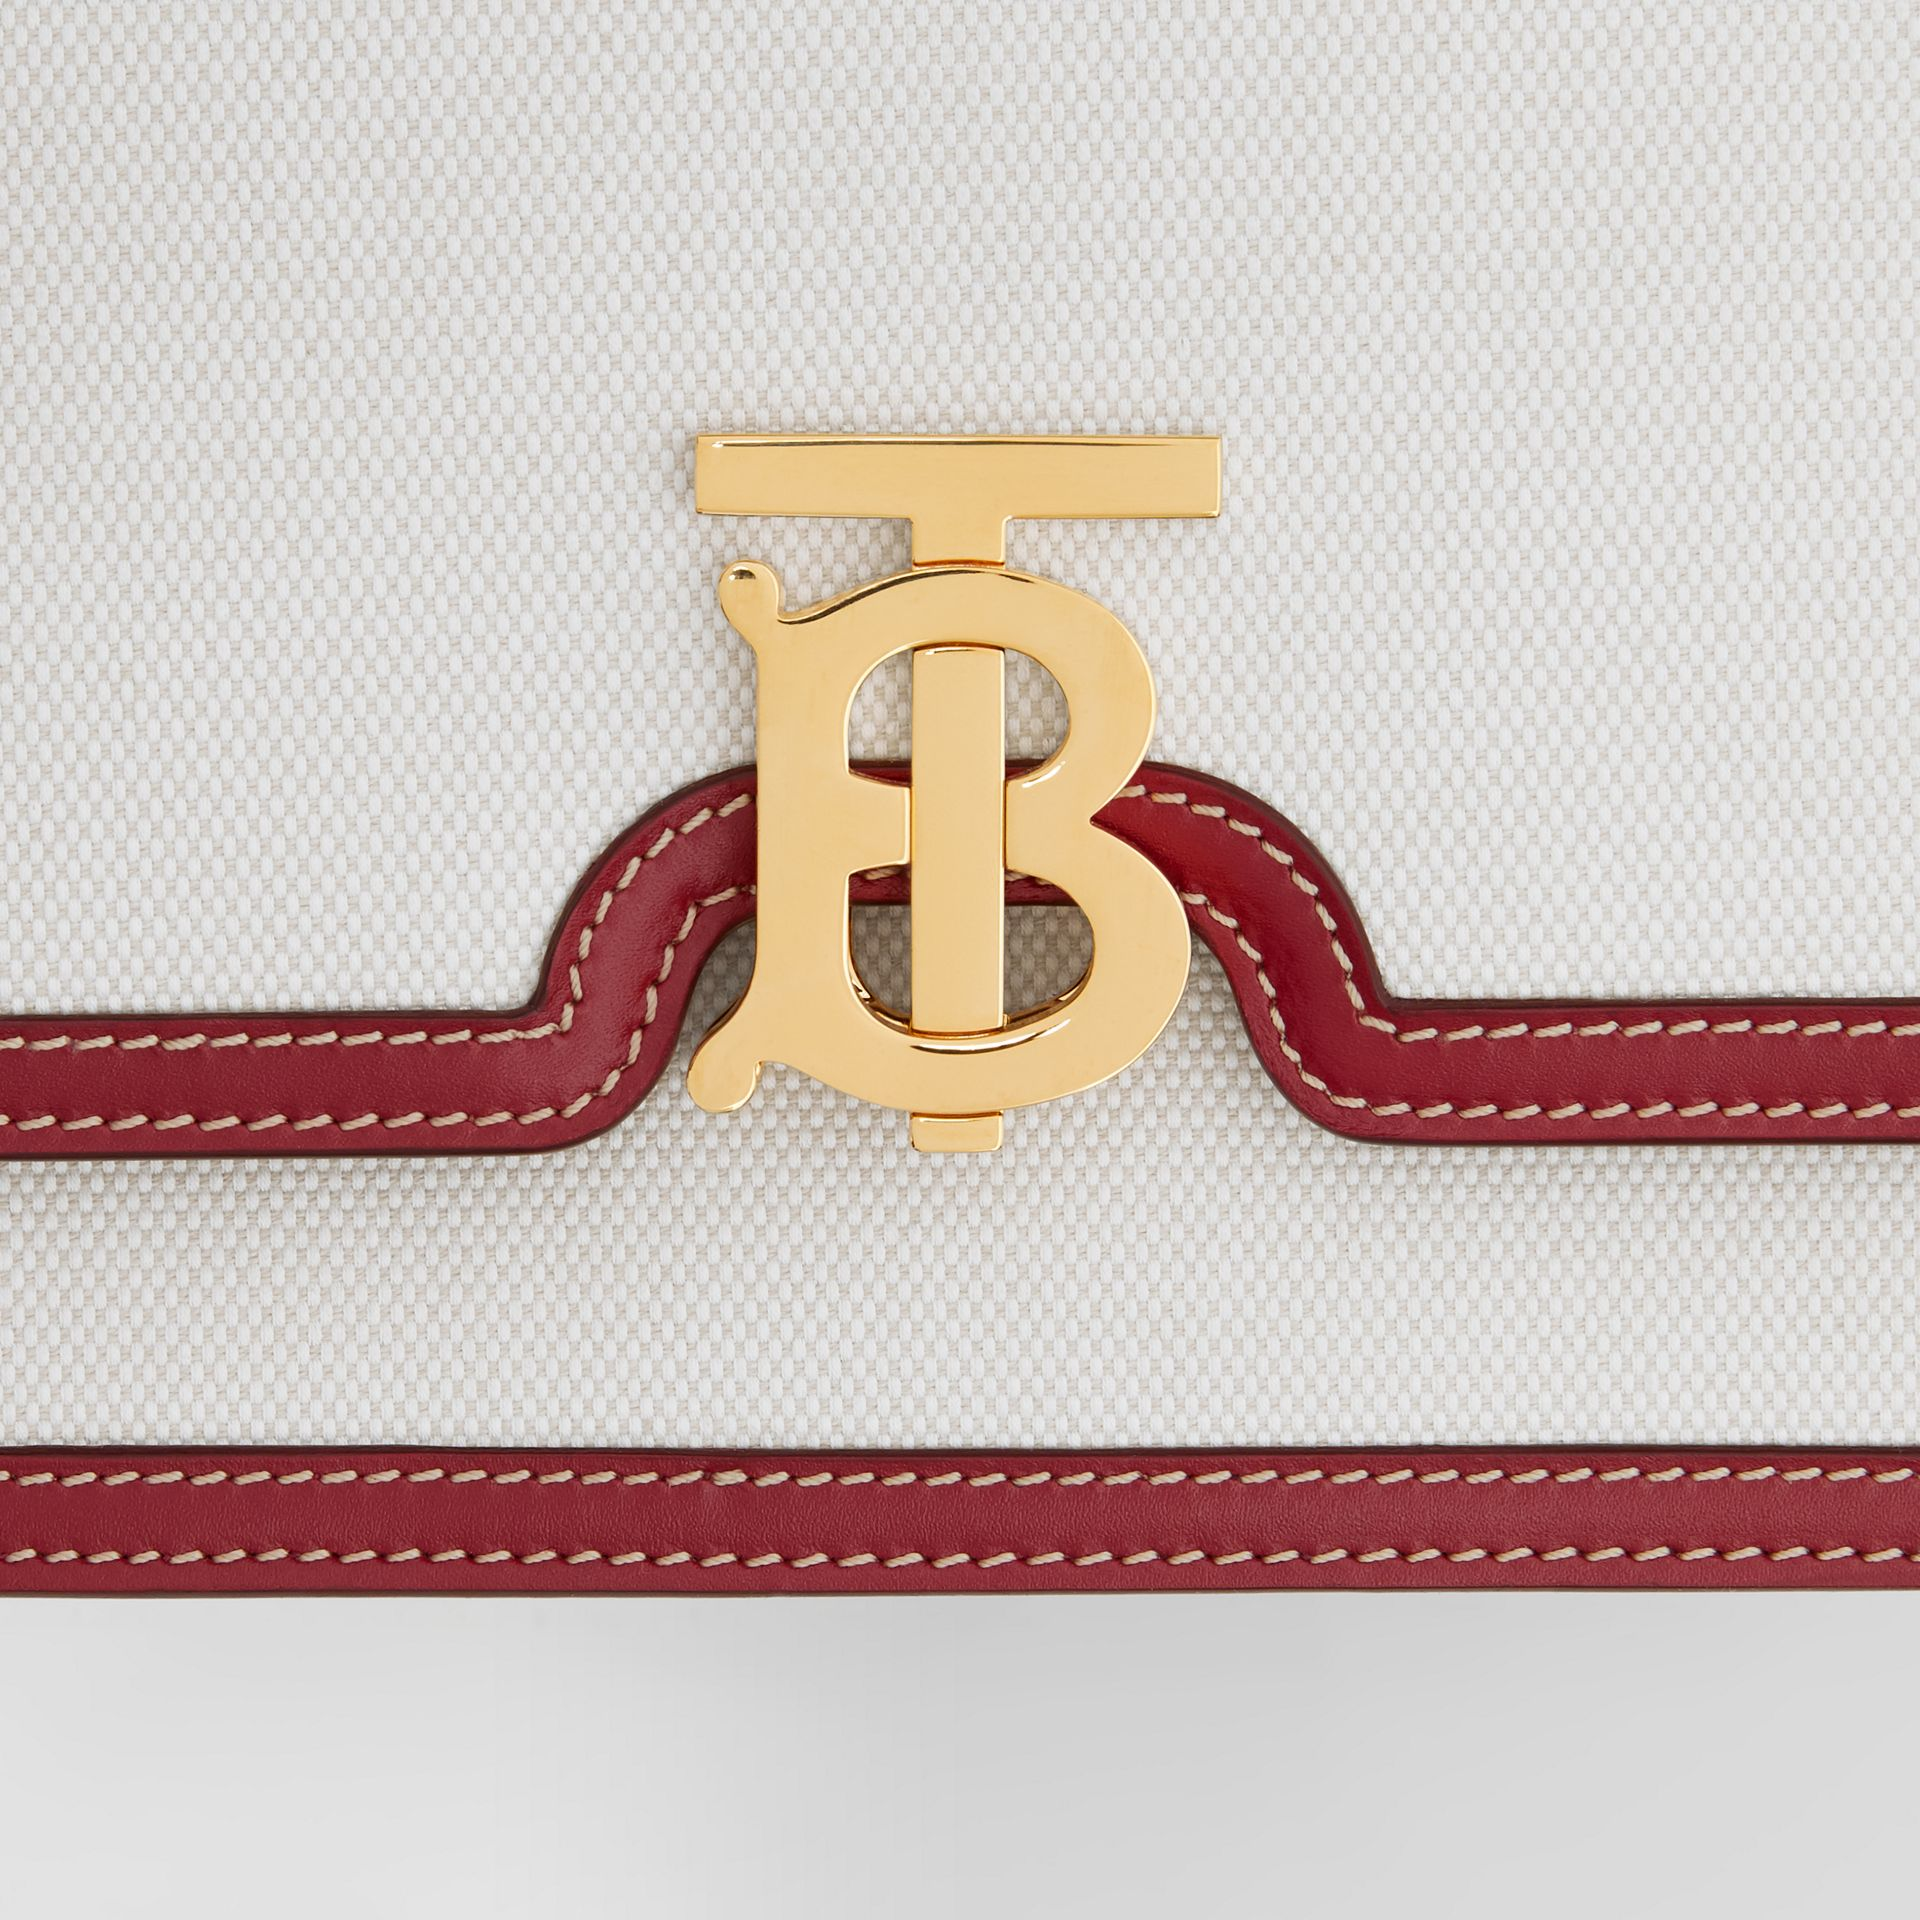 Small Two-tone Canvas and Leather TB Bag in Natural/dark Carmine - Women | Burberry Hong Kong S.A.R - gallery image 1